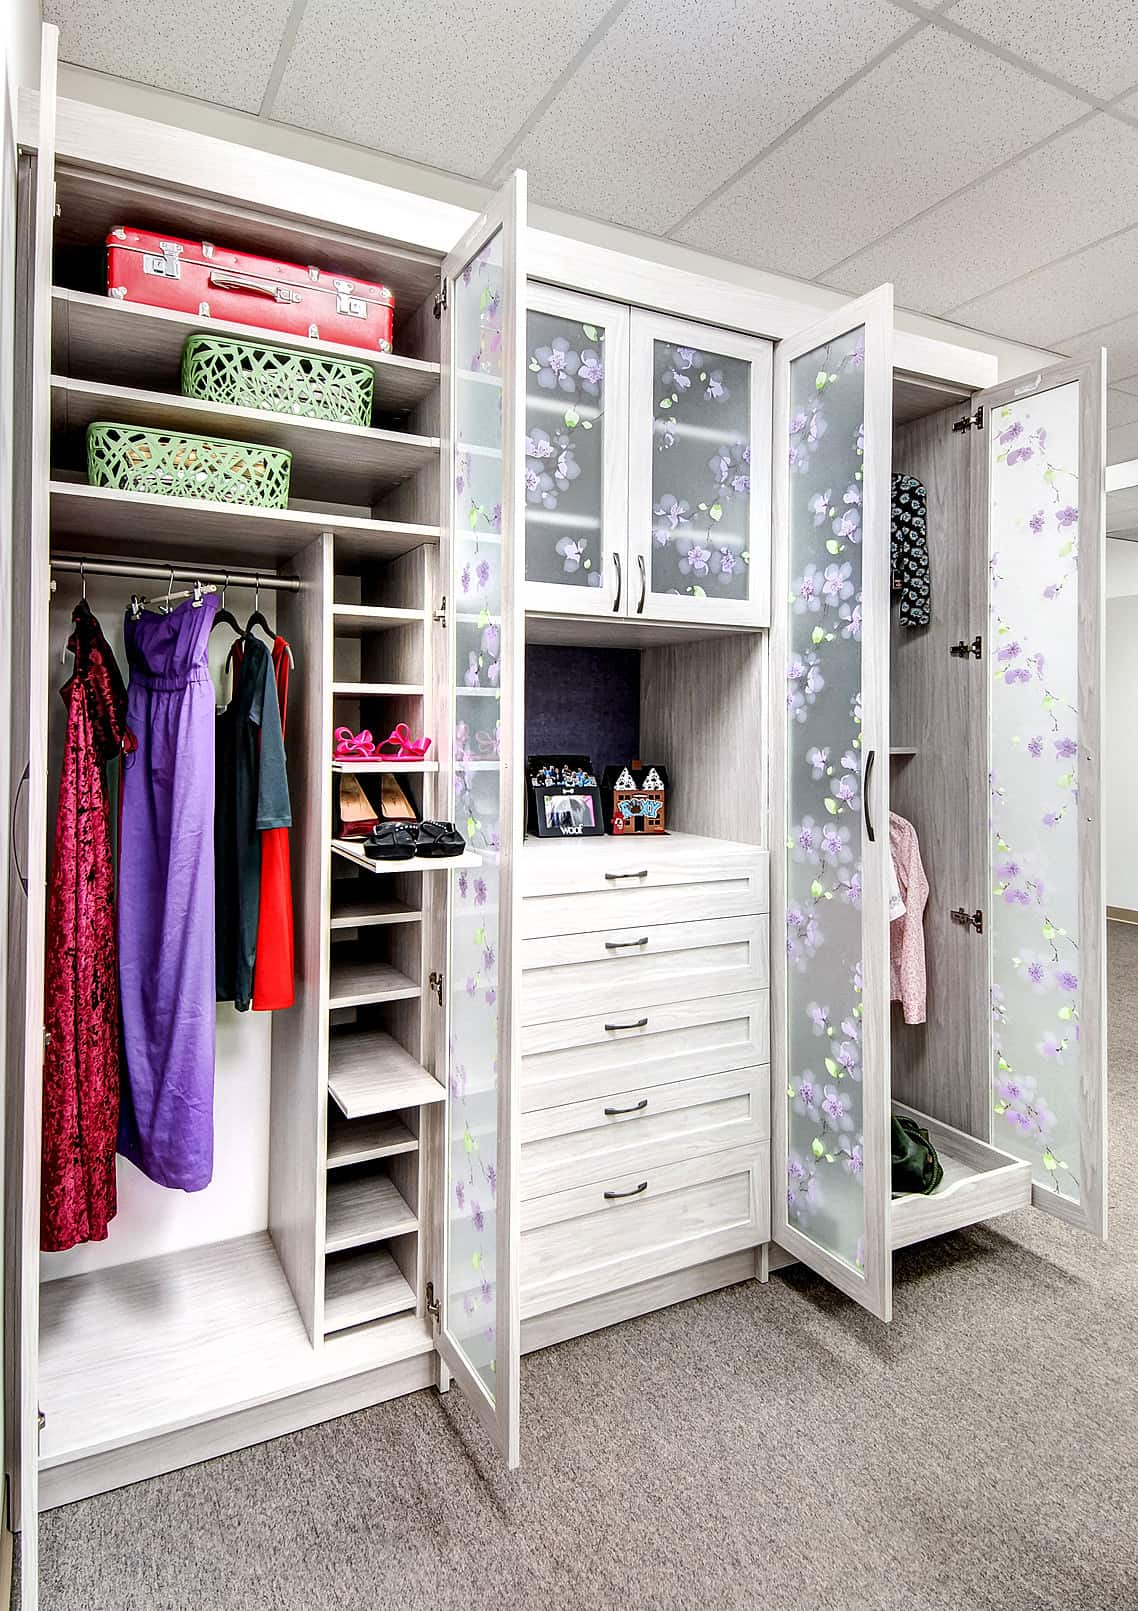 Women's bedroom closet featuring a carpet flooring and white finished cabinetry.